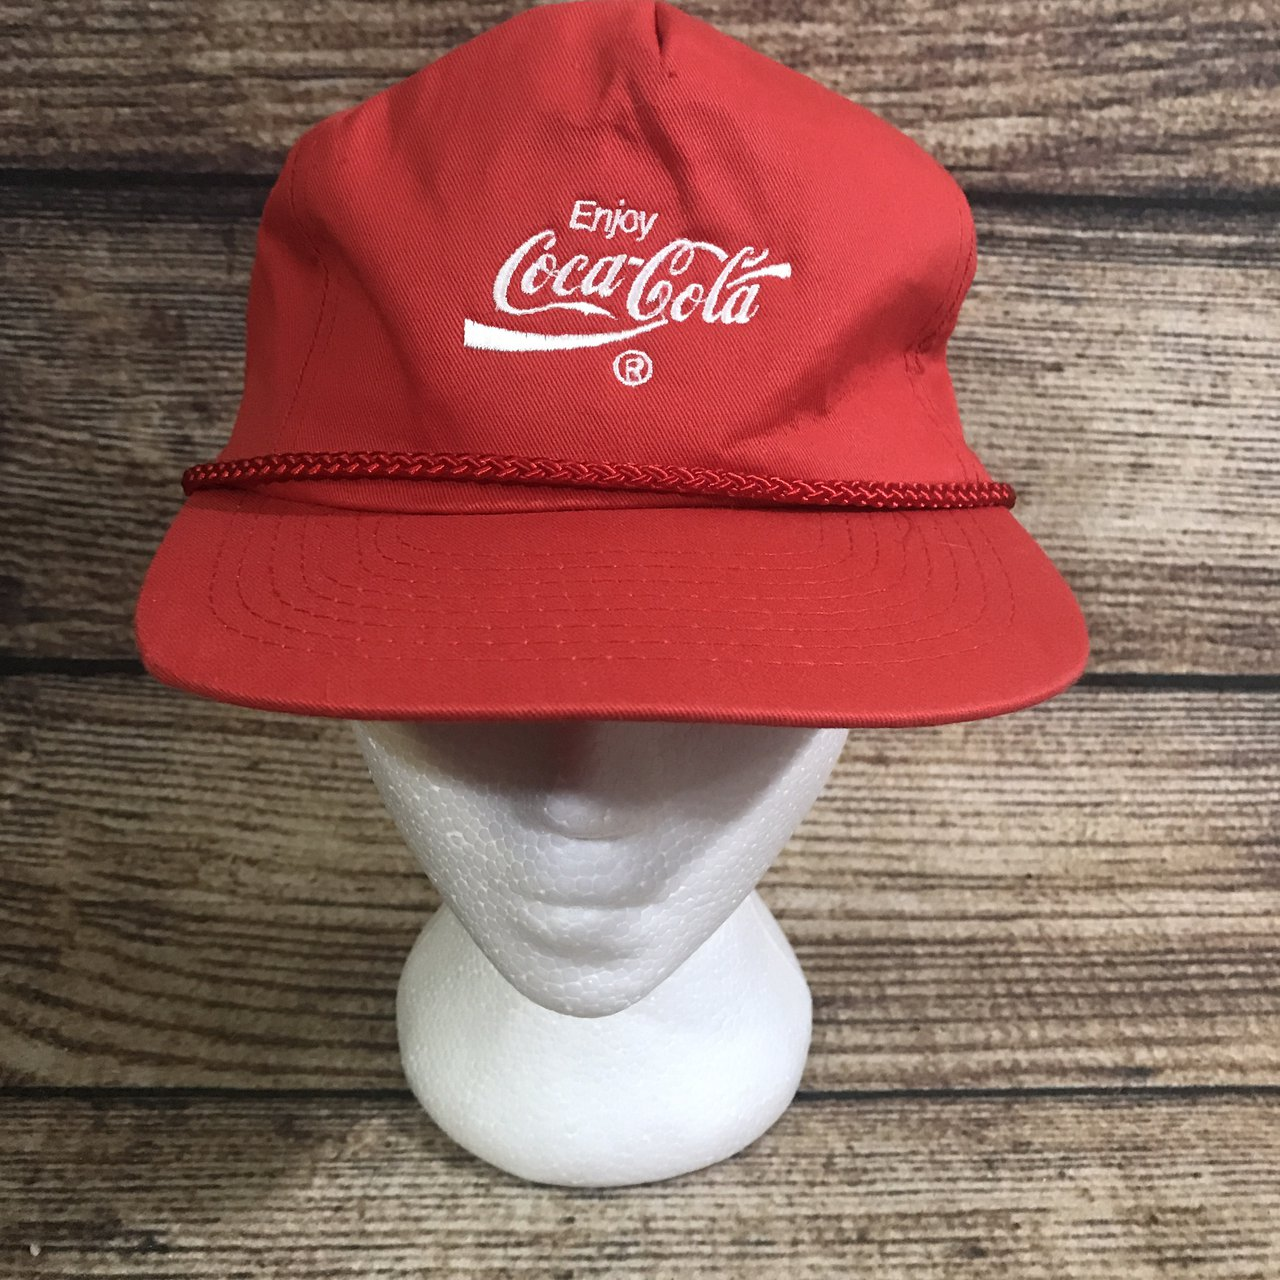 ad65651a07a Vintage 90s Coca Cola Coke snapback hat Good condition No - Depop